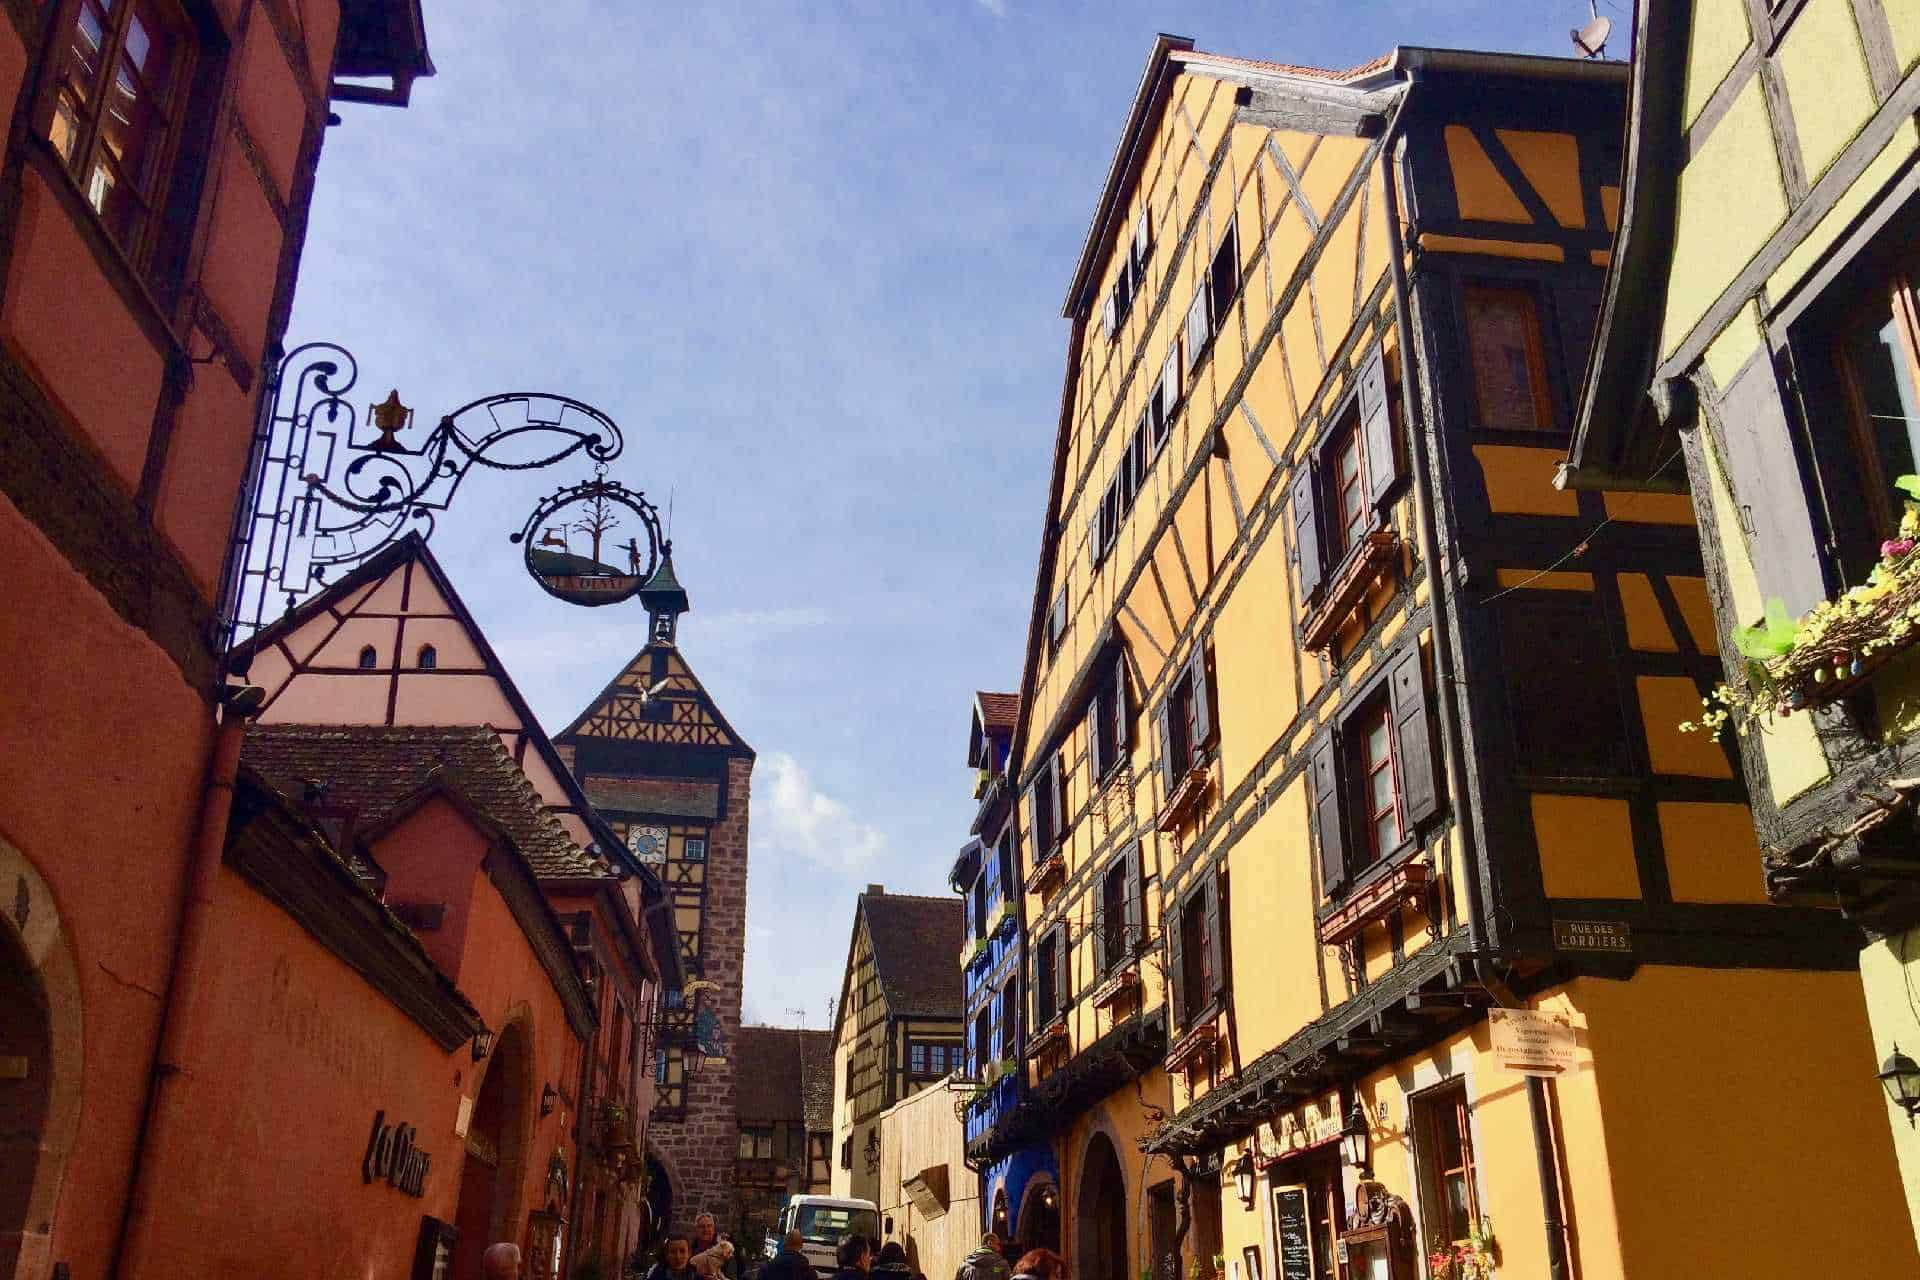 Riquewihr(also known as Rique farm) town, very colourful and quiet town.